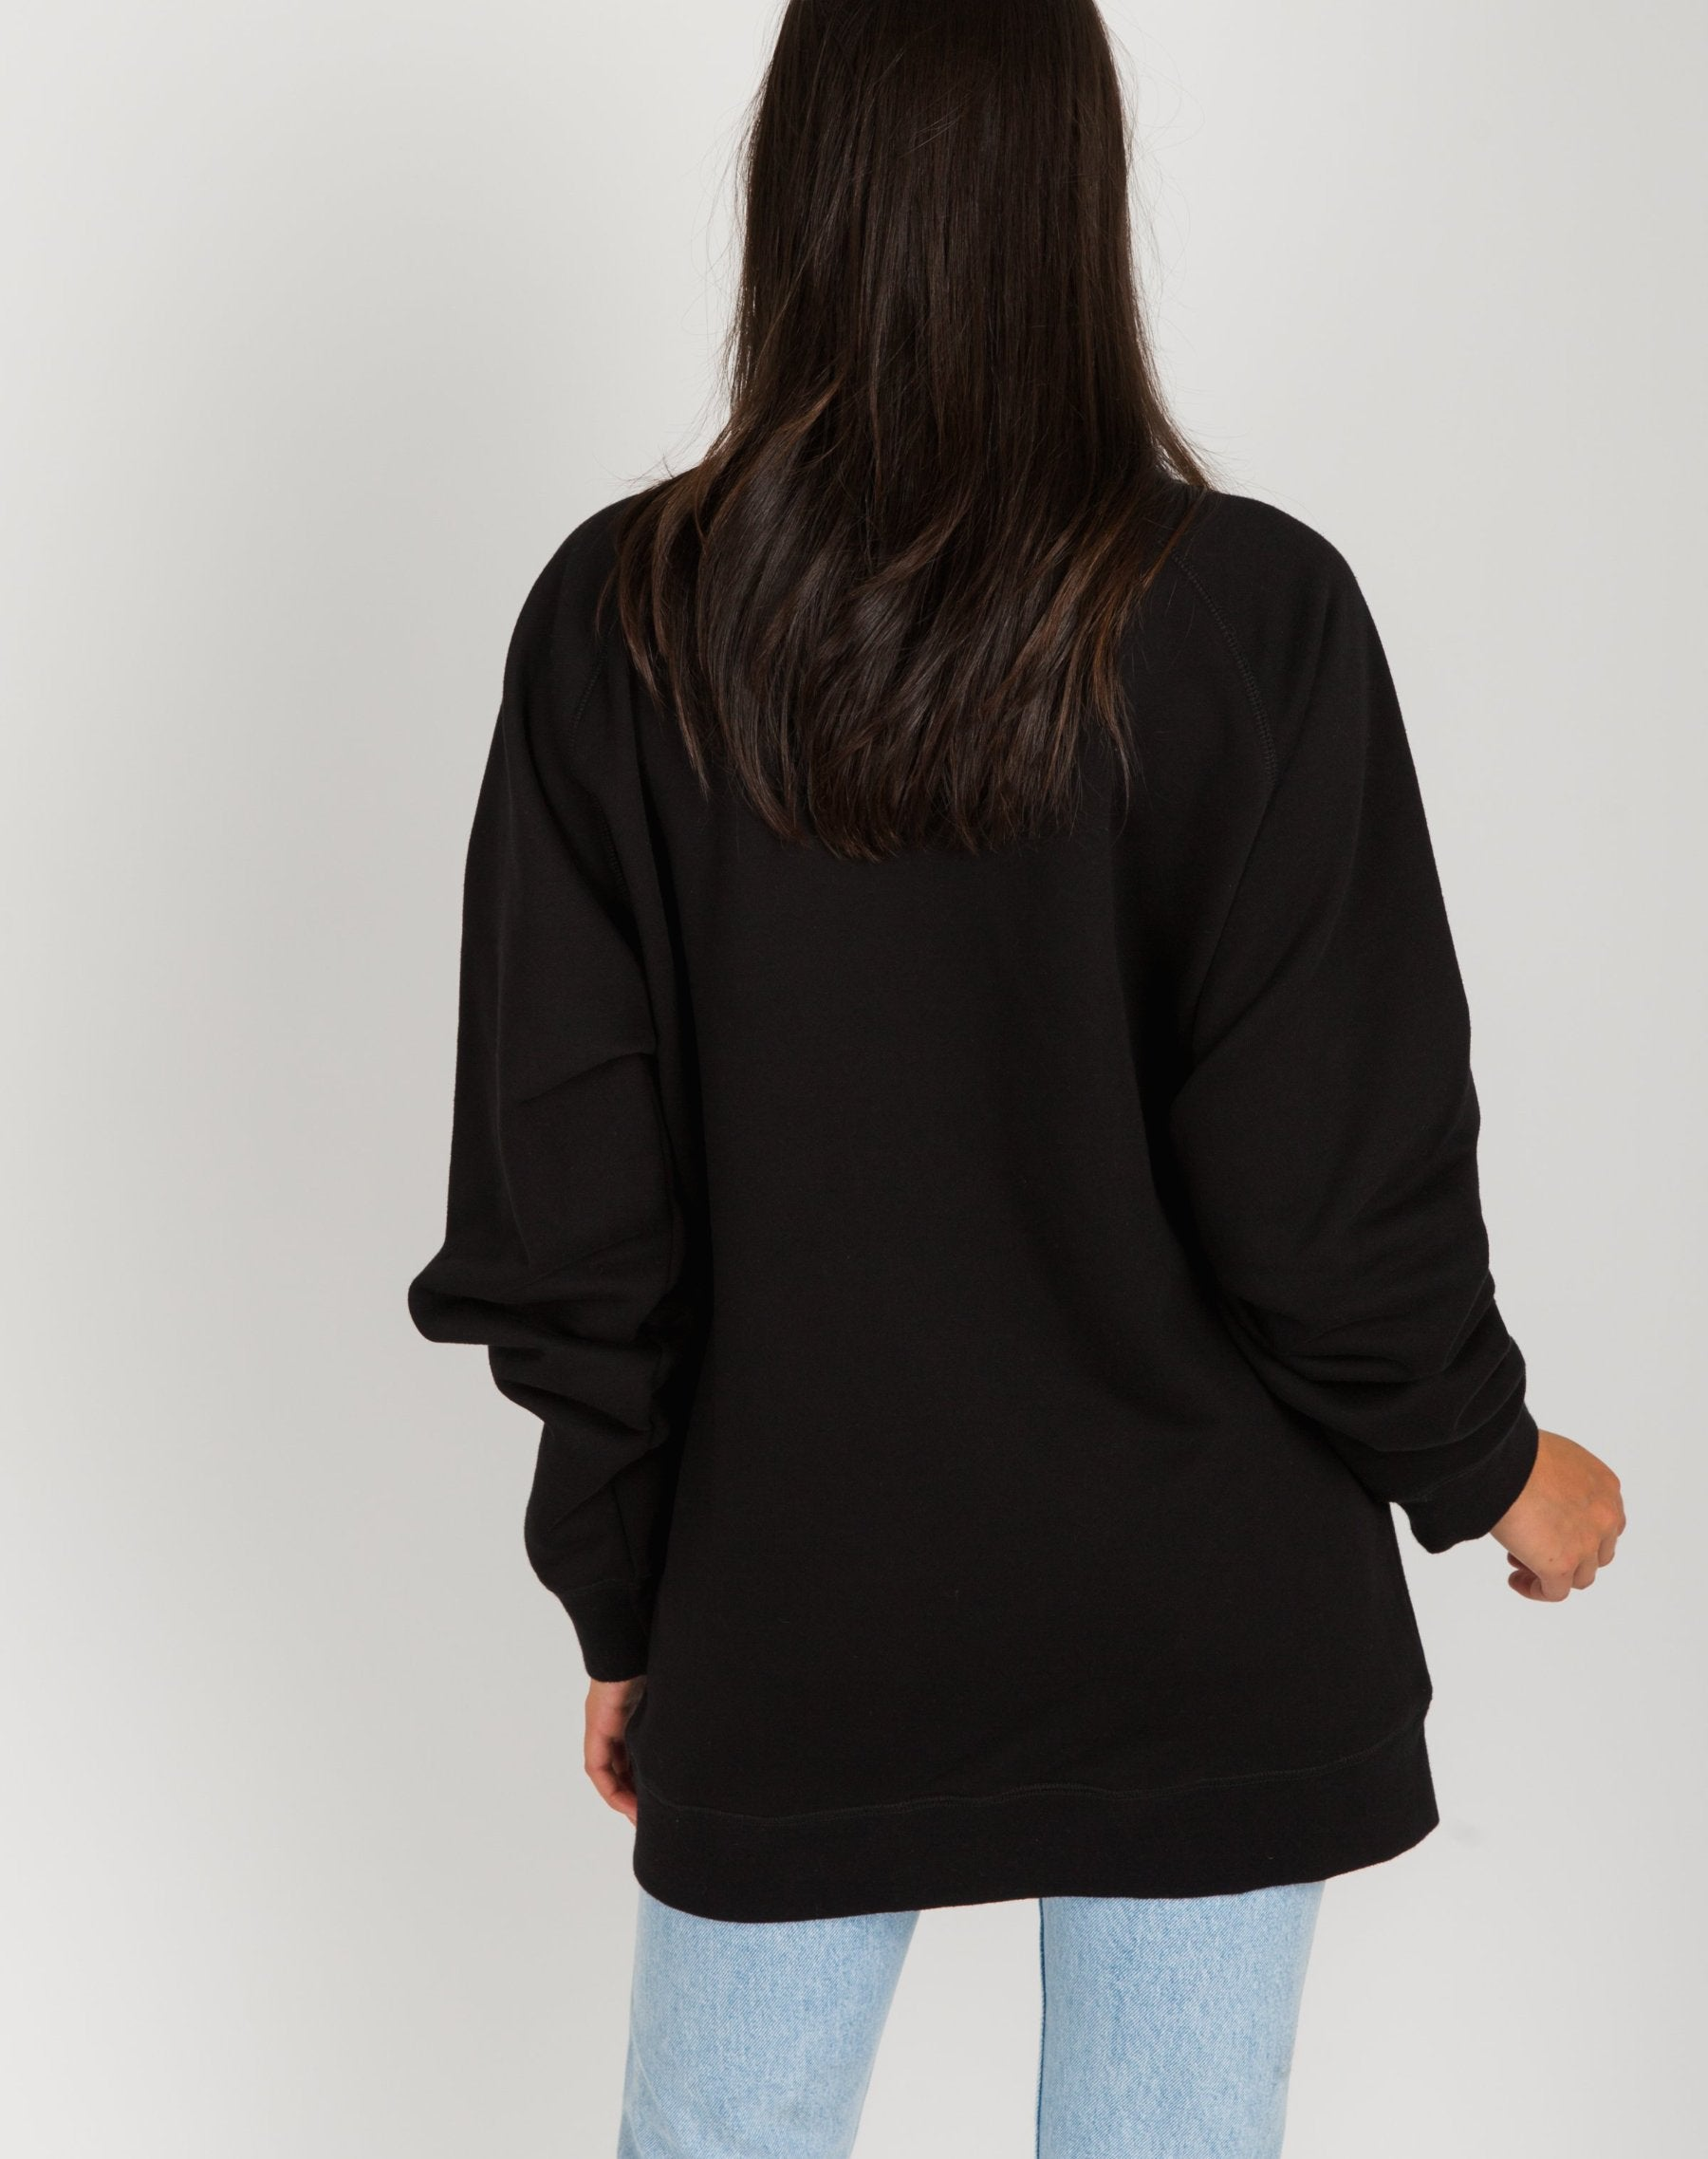 Photo of the back of the Redhead big sister crew neck sweatshirt in black by Brunette the Label.